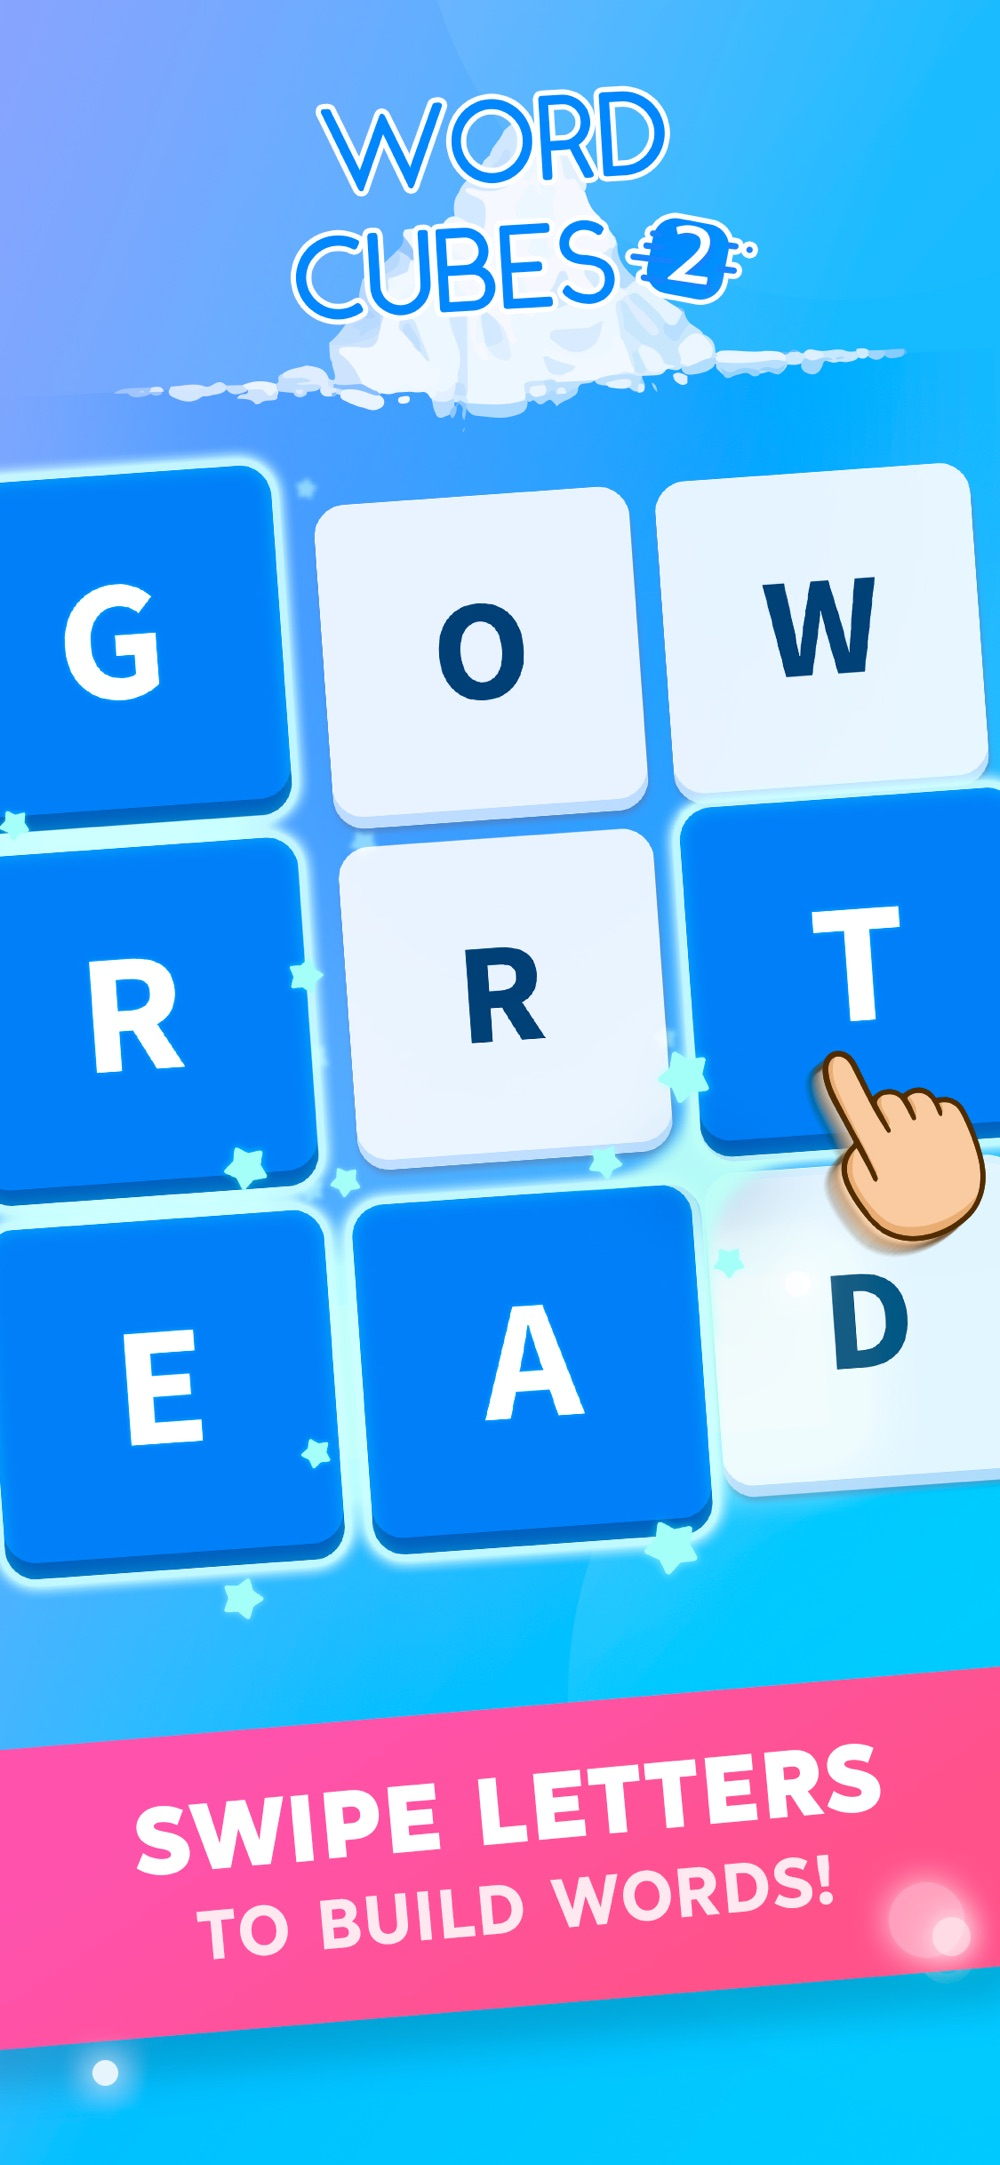 Word Cubes 2 Cheat Codes